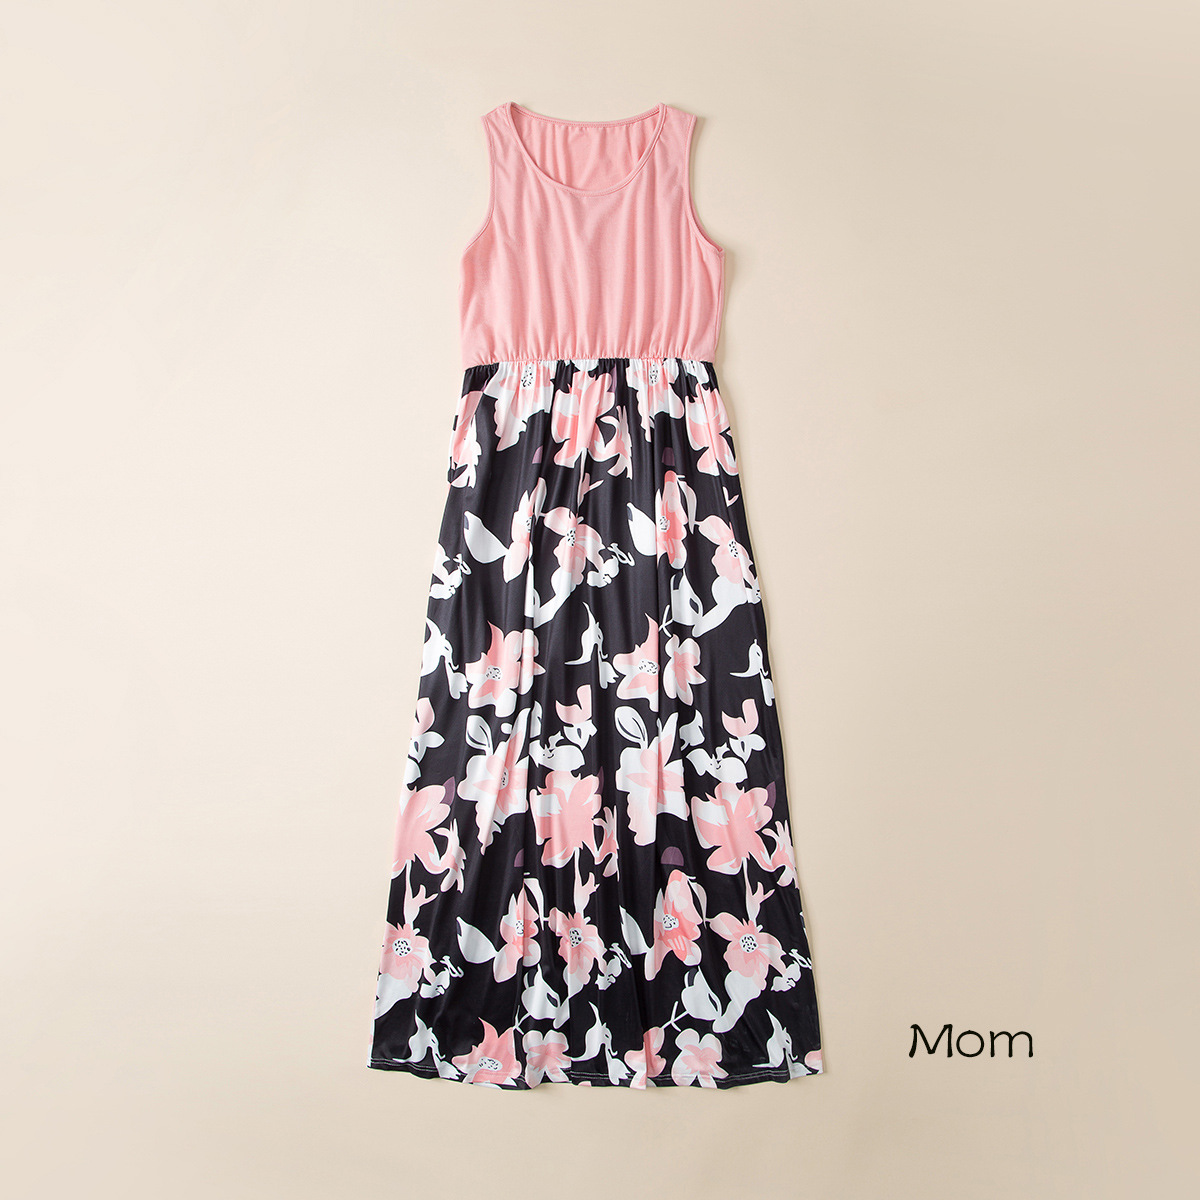 2021 Family Matching Maxi Dress Mom And Me Daughter Summer Patchwork Floral Long Dress For Women Clothes Mother Baby Girl Outfit